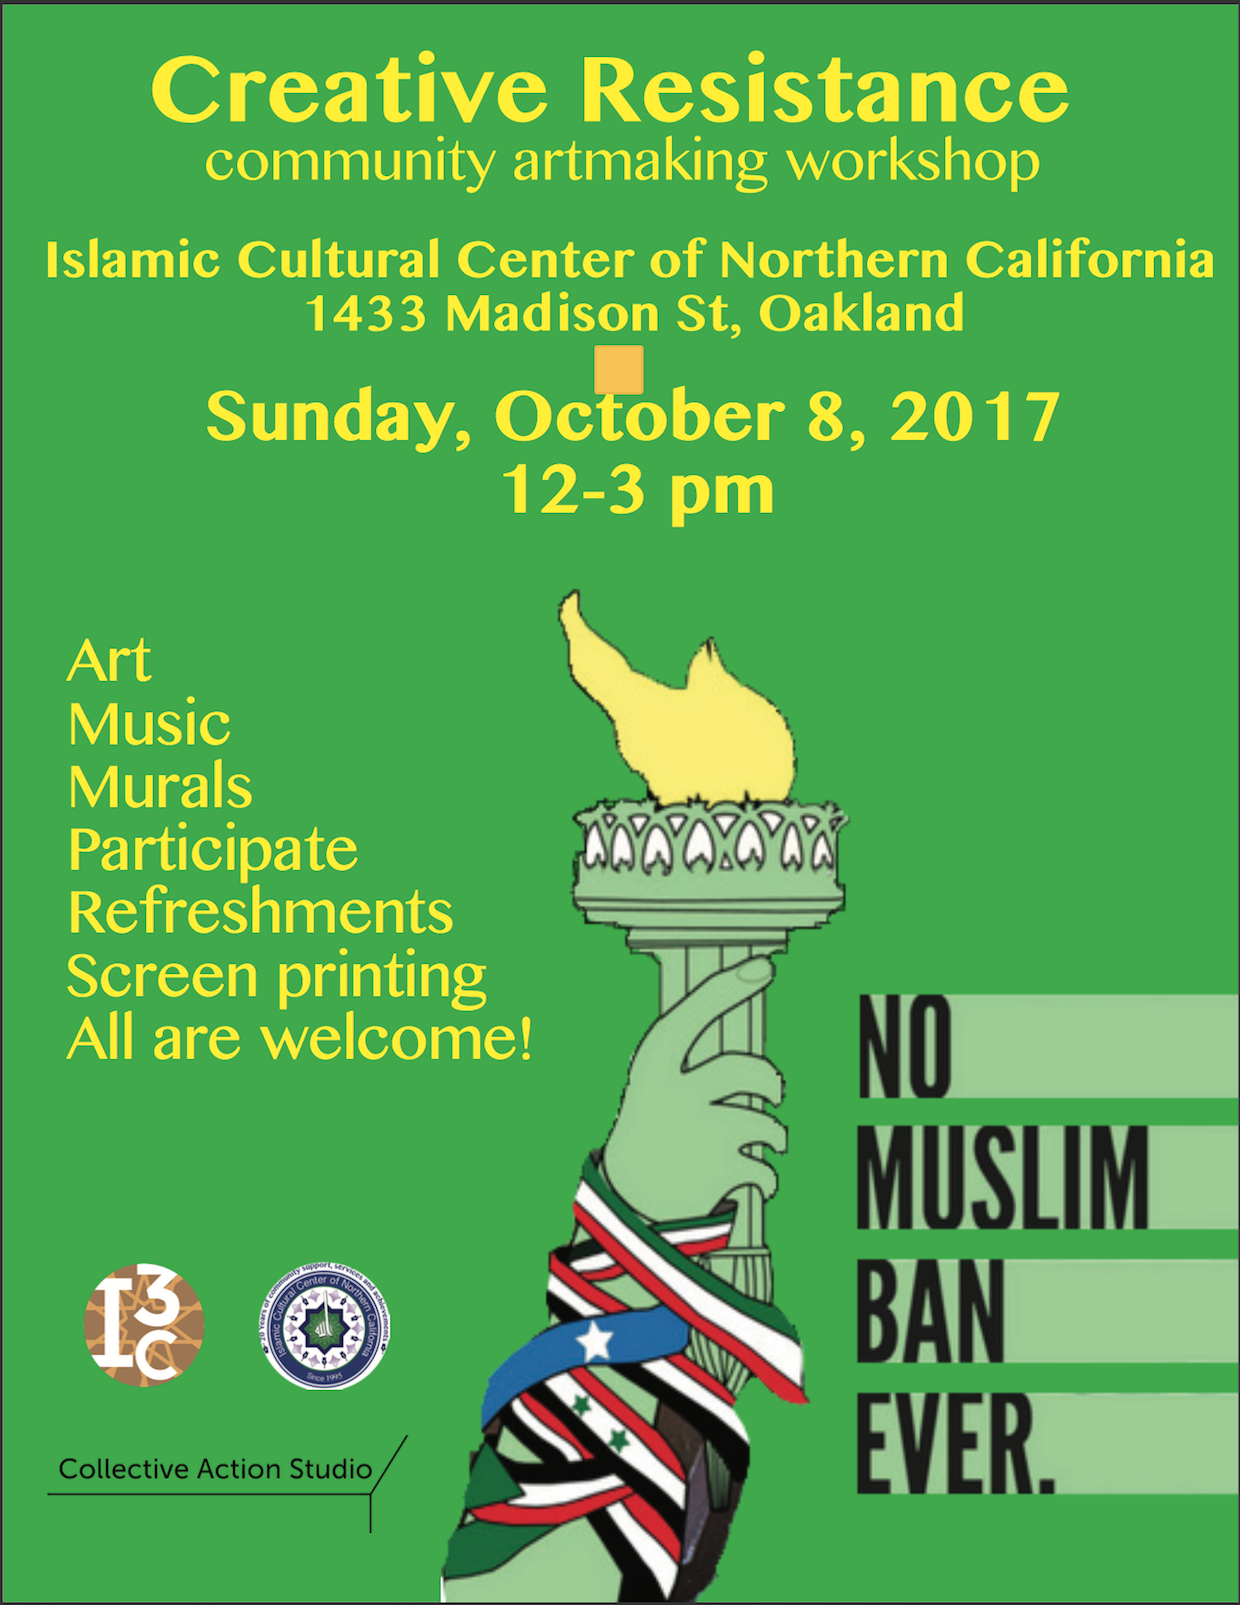 Information on New Travel Ban or Muslim Ban 3 0 and